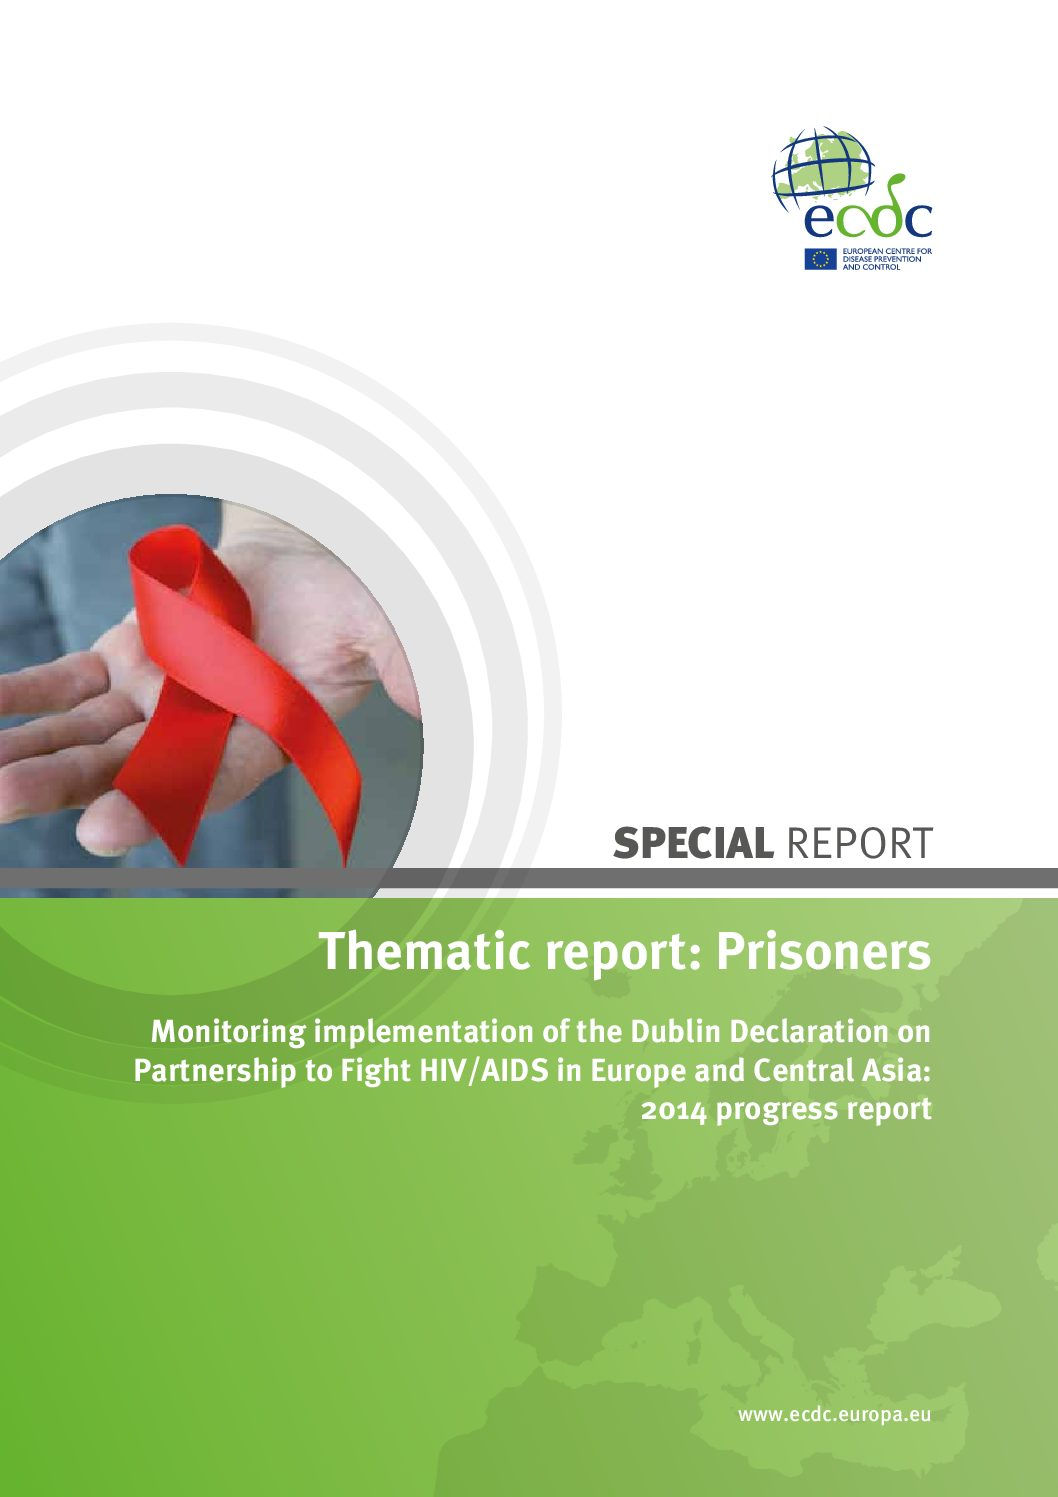 Thematic report: Prisoners. Monitoring implementation of the Dublin Declaration on Partnership to Fight HIV/AIDS in Europe and Central Asia: 2014 progress report